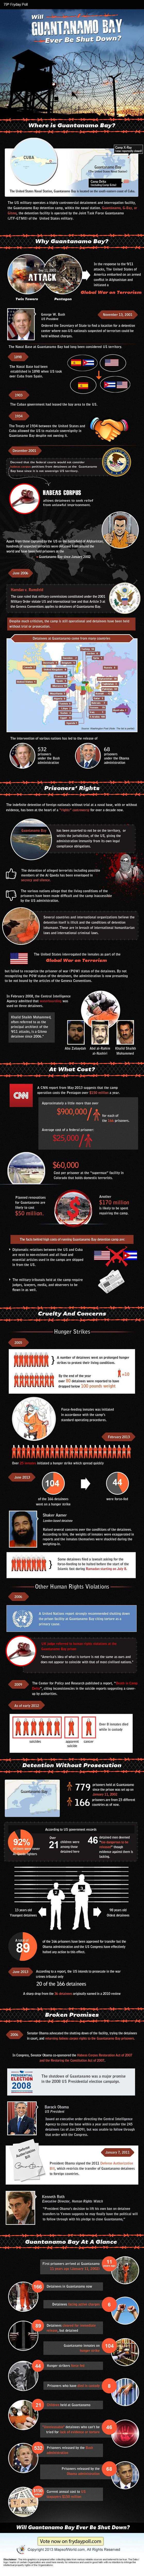 Find in-depth review and Infographic about Guantanamo Bay. Learn more about its recent history, stats about prisoners, cost to taxpayers, human rights violations and the politics behind the most controversial US detention camp.